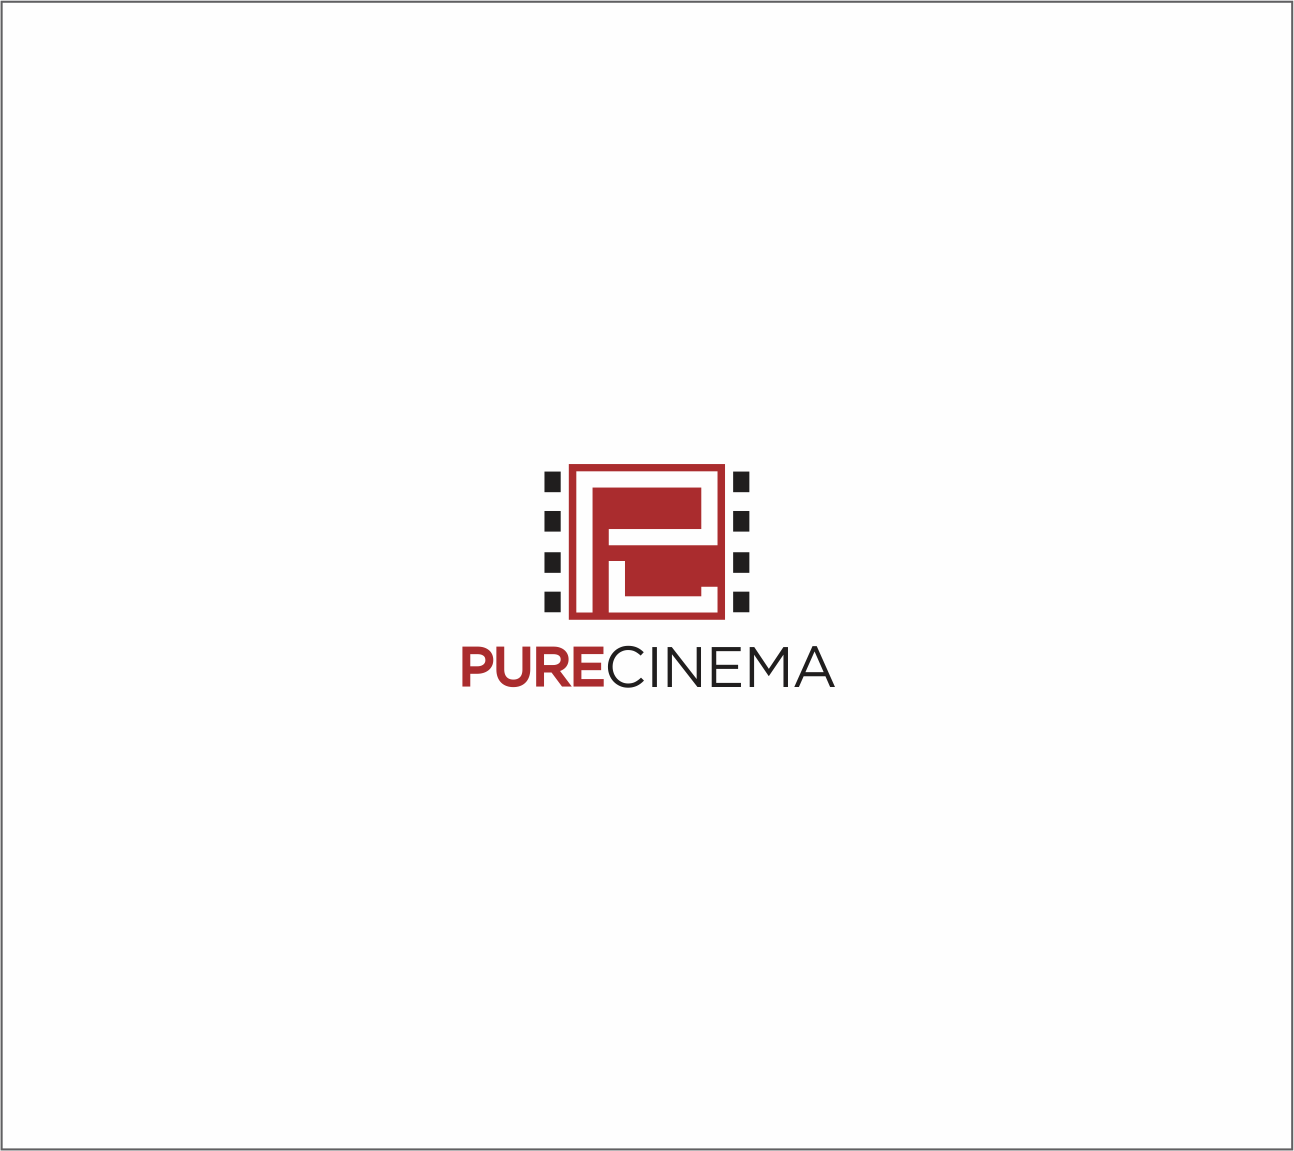 Logo Design by Armada Jamaluddin - Entry No. 78 in the Logo Design Contest Imaginative Logo Design for Pure Cinema.